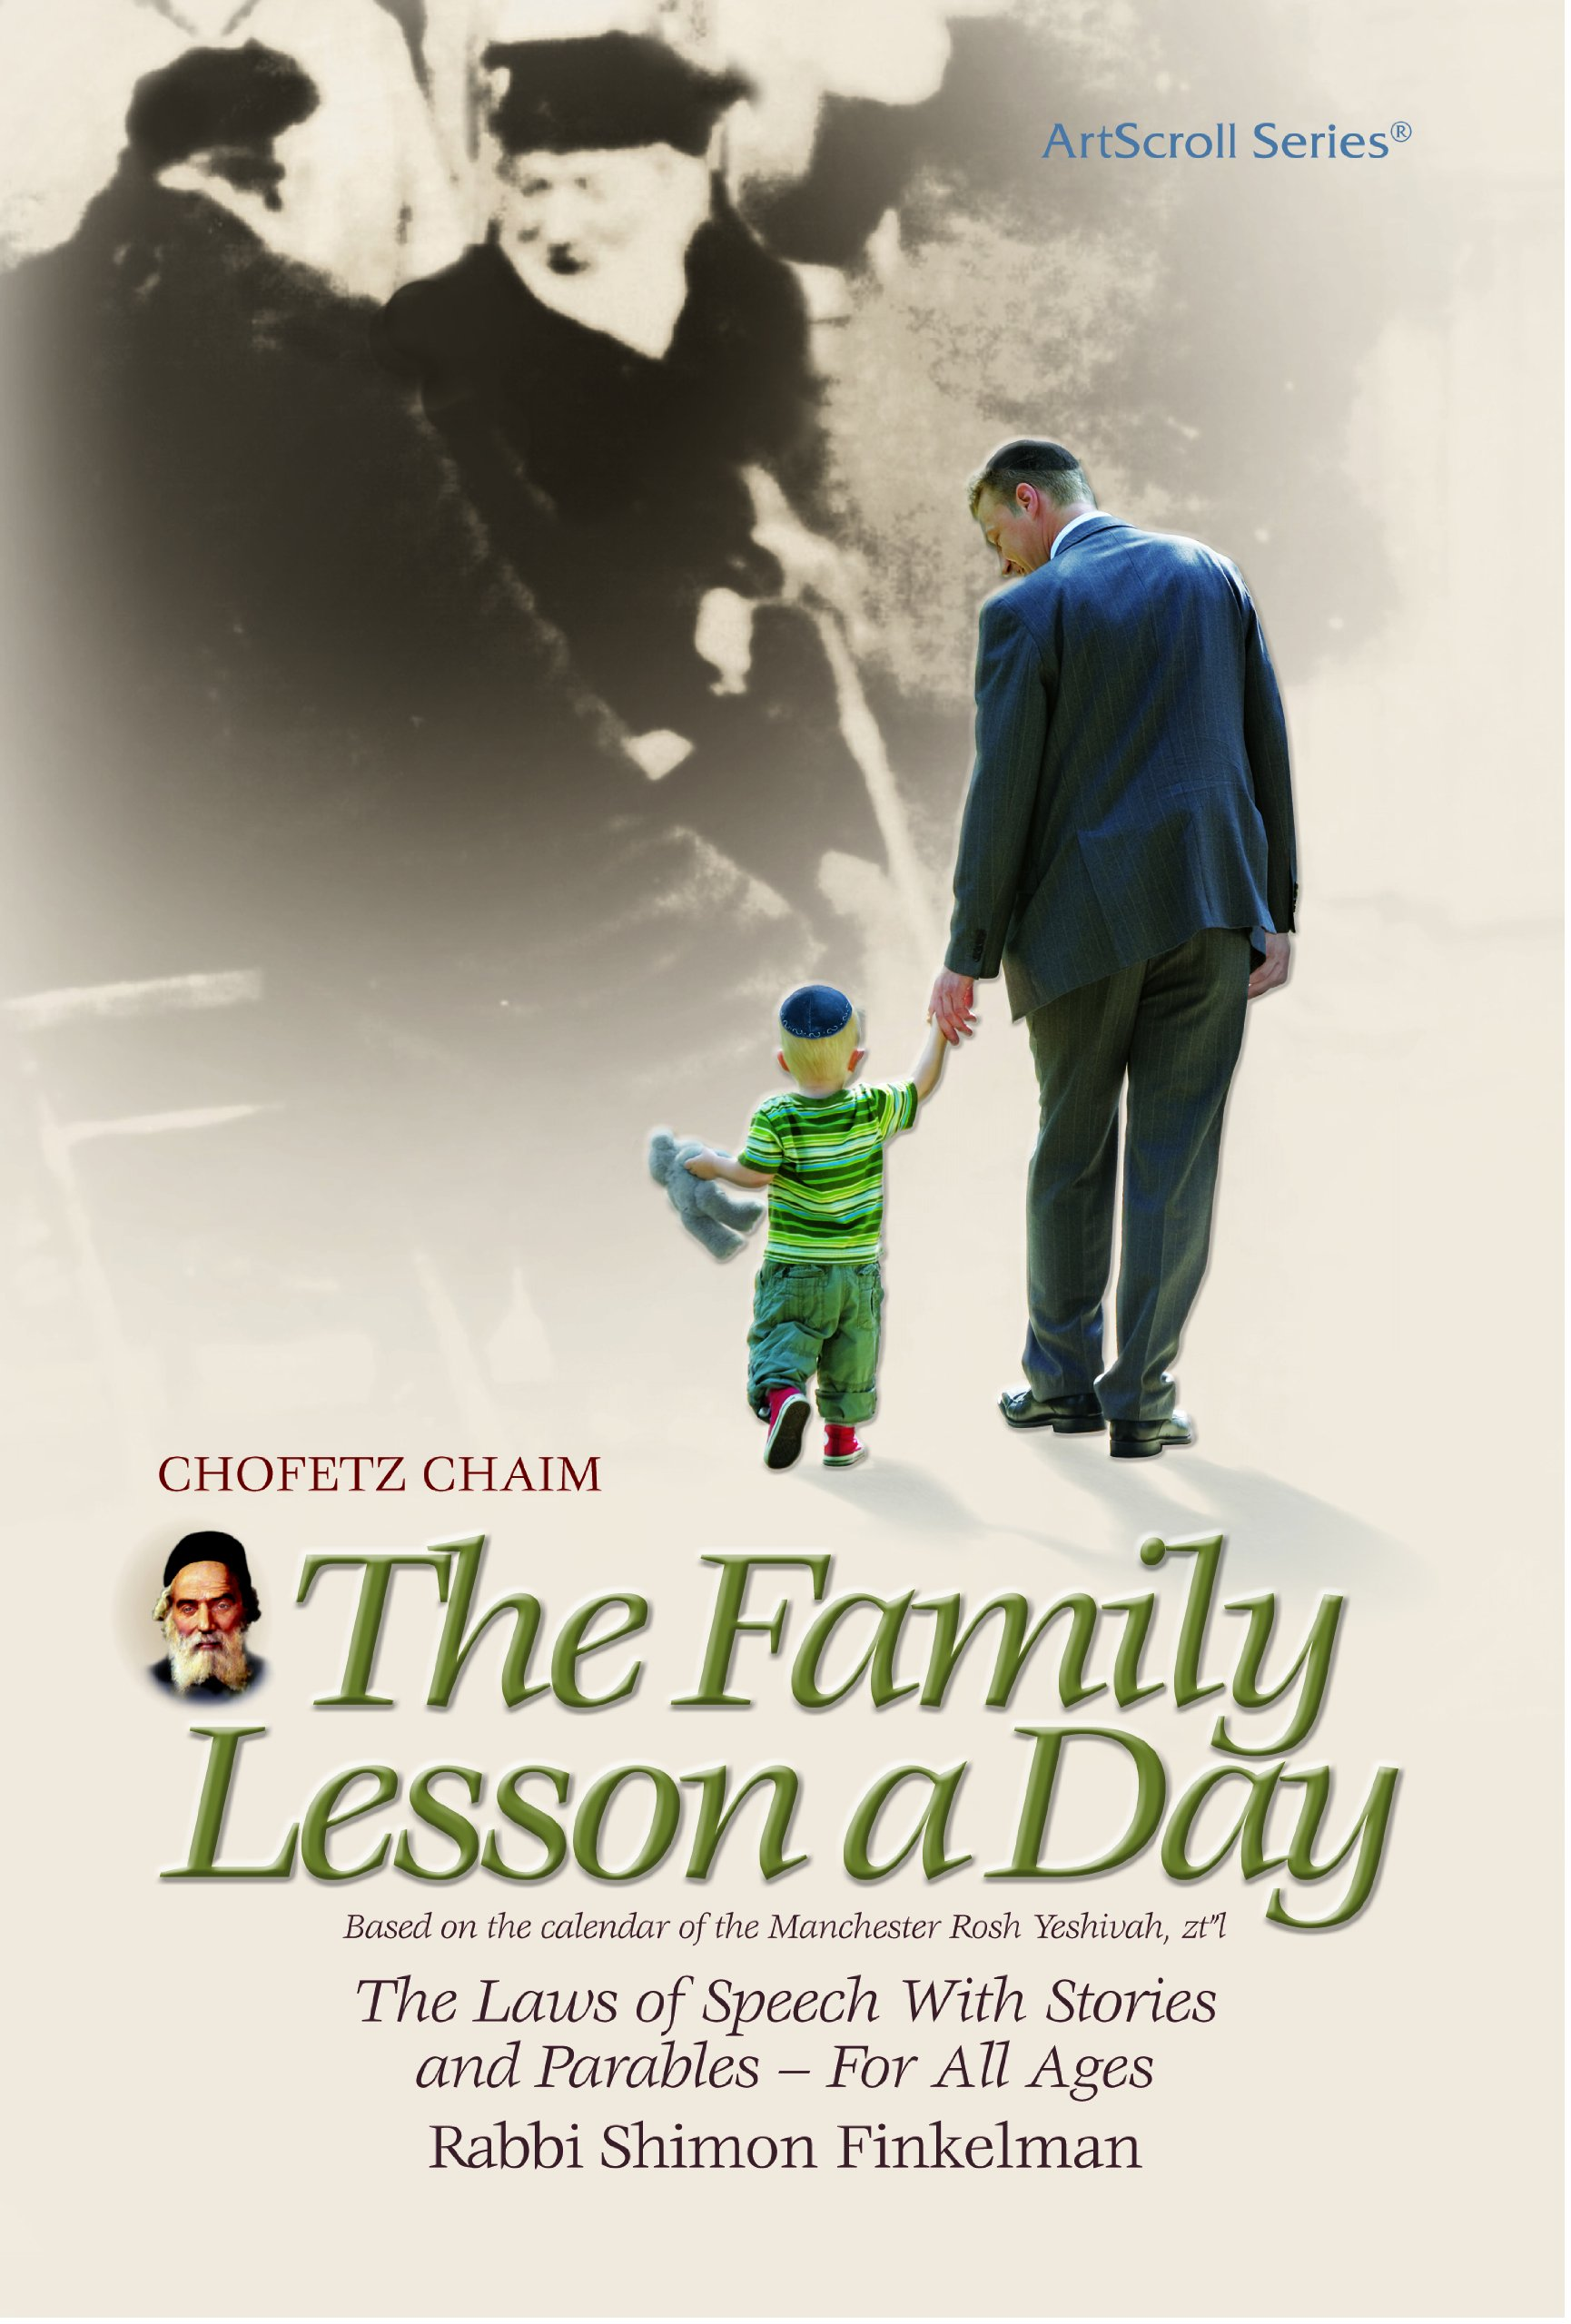 Chofetz chaim the family lesson a day rabbi shimon finkelman chofetz chaim the family lesson a day rabbi shimon finkelman 9781422609606 amazon books fandeluxe Image collections